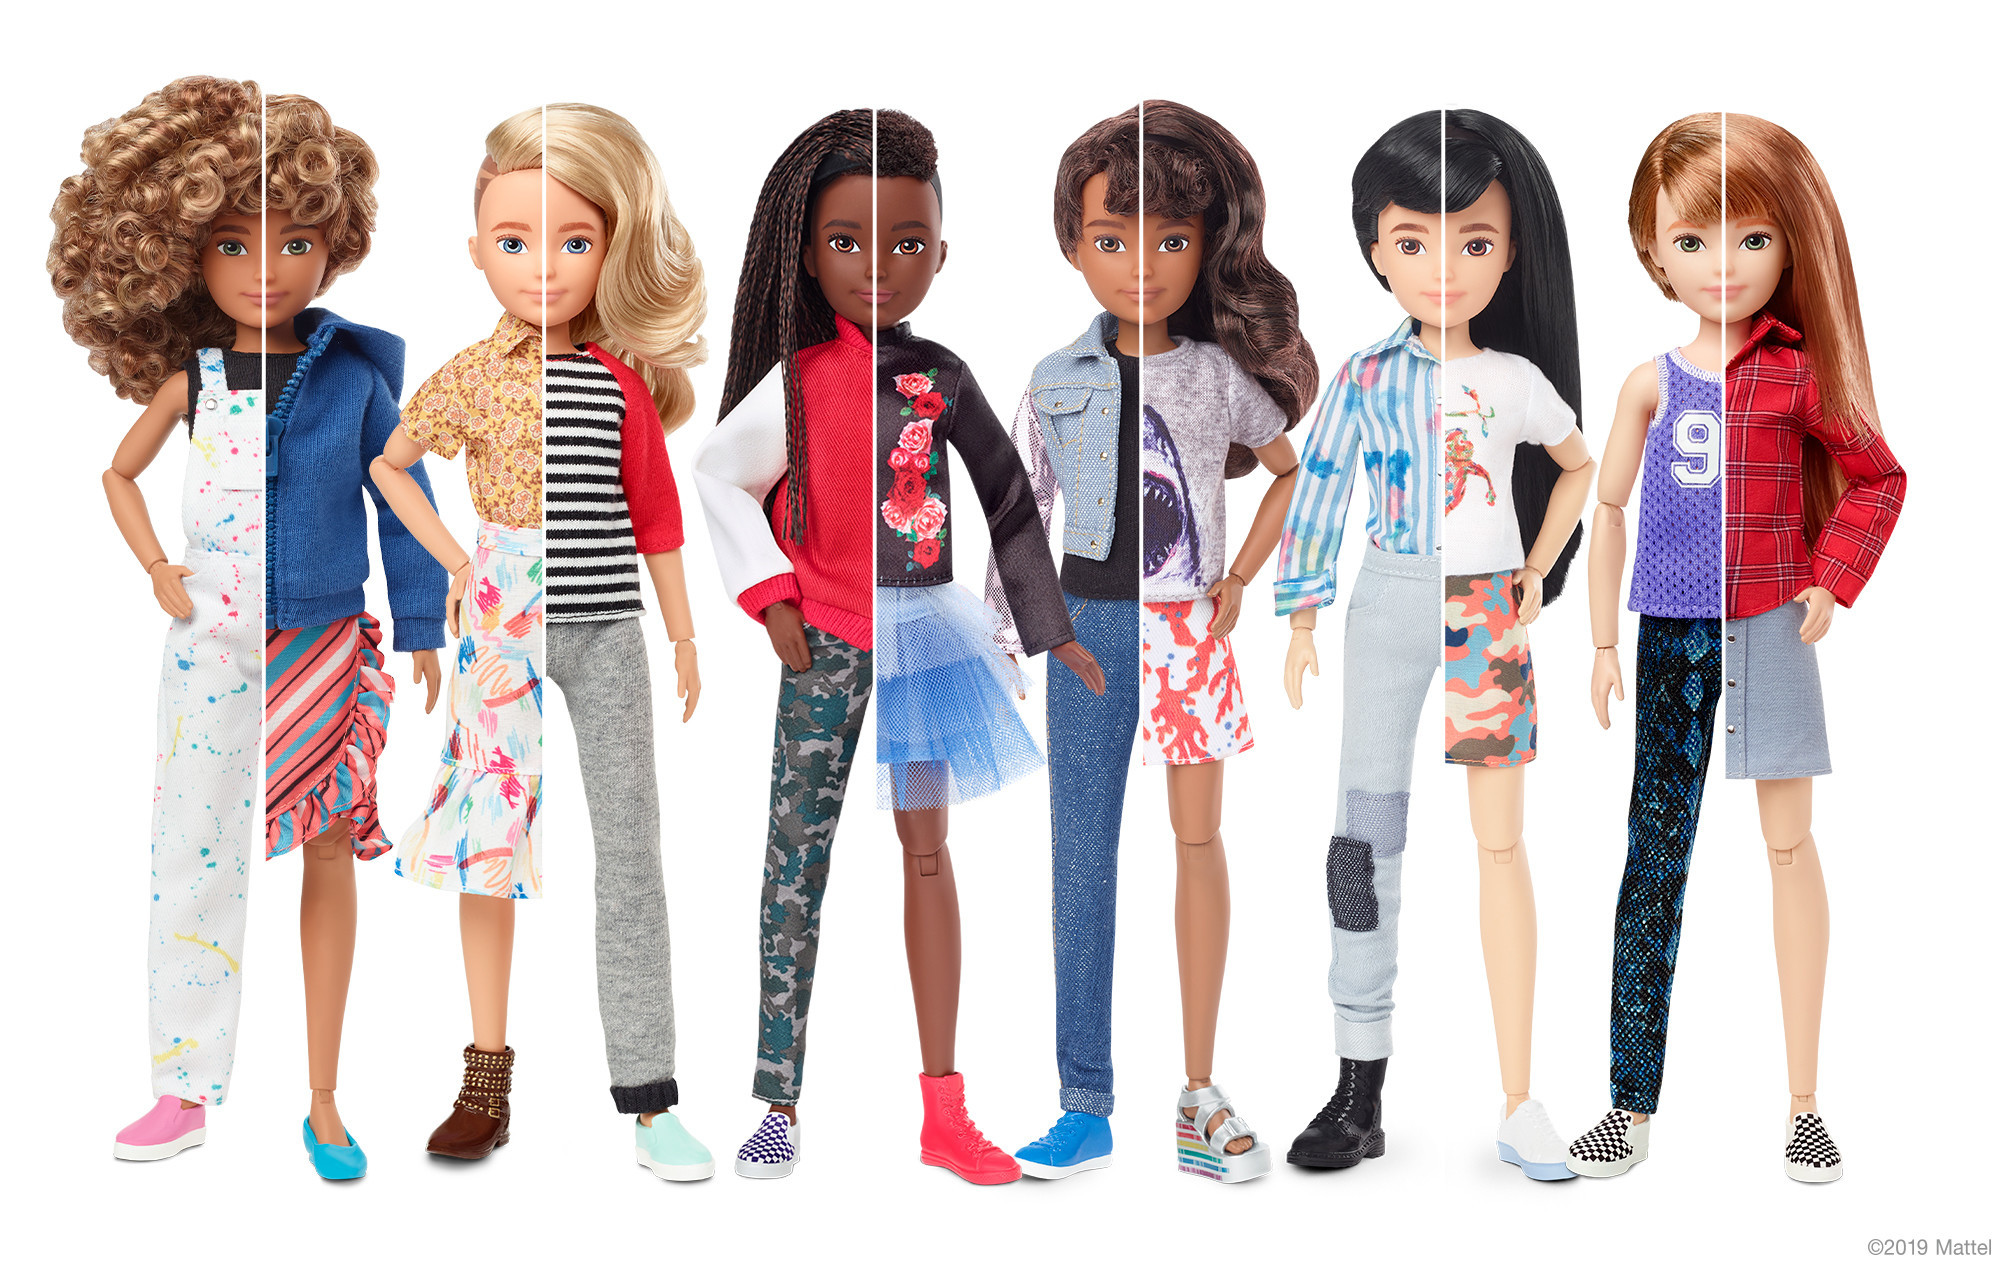 Mattel's new gender-neutral doll line shows that 'all kids can benefit from doll play'